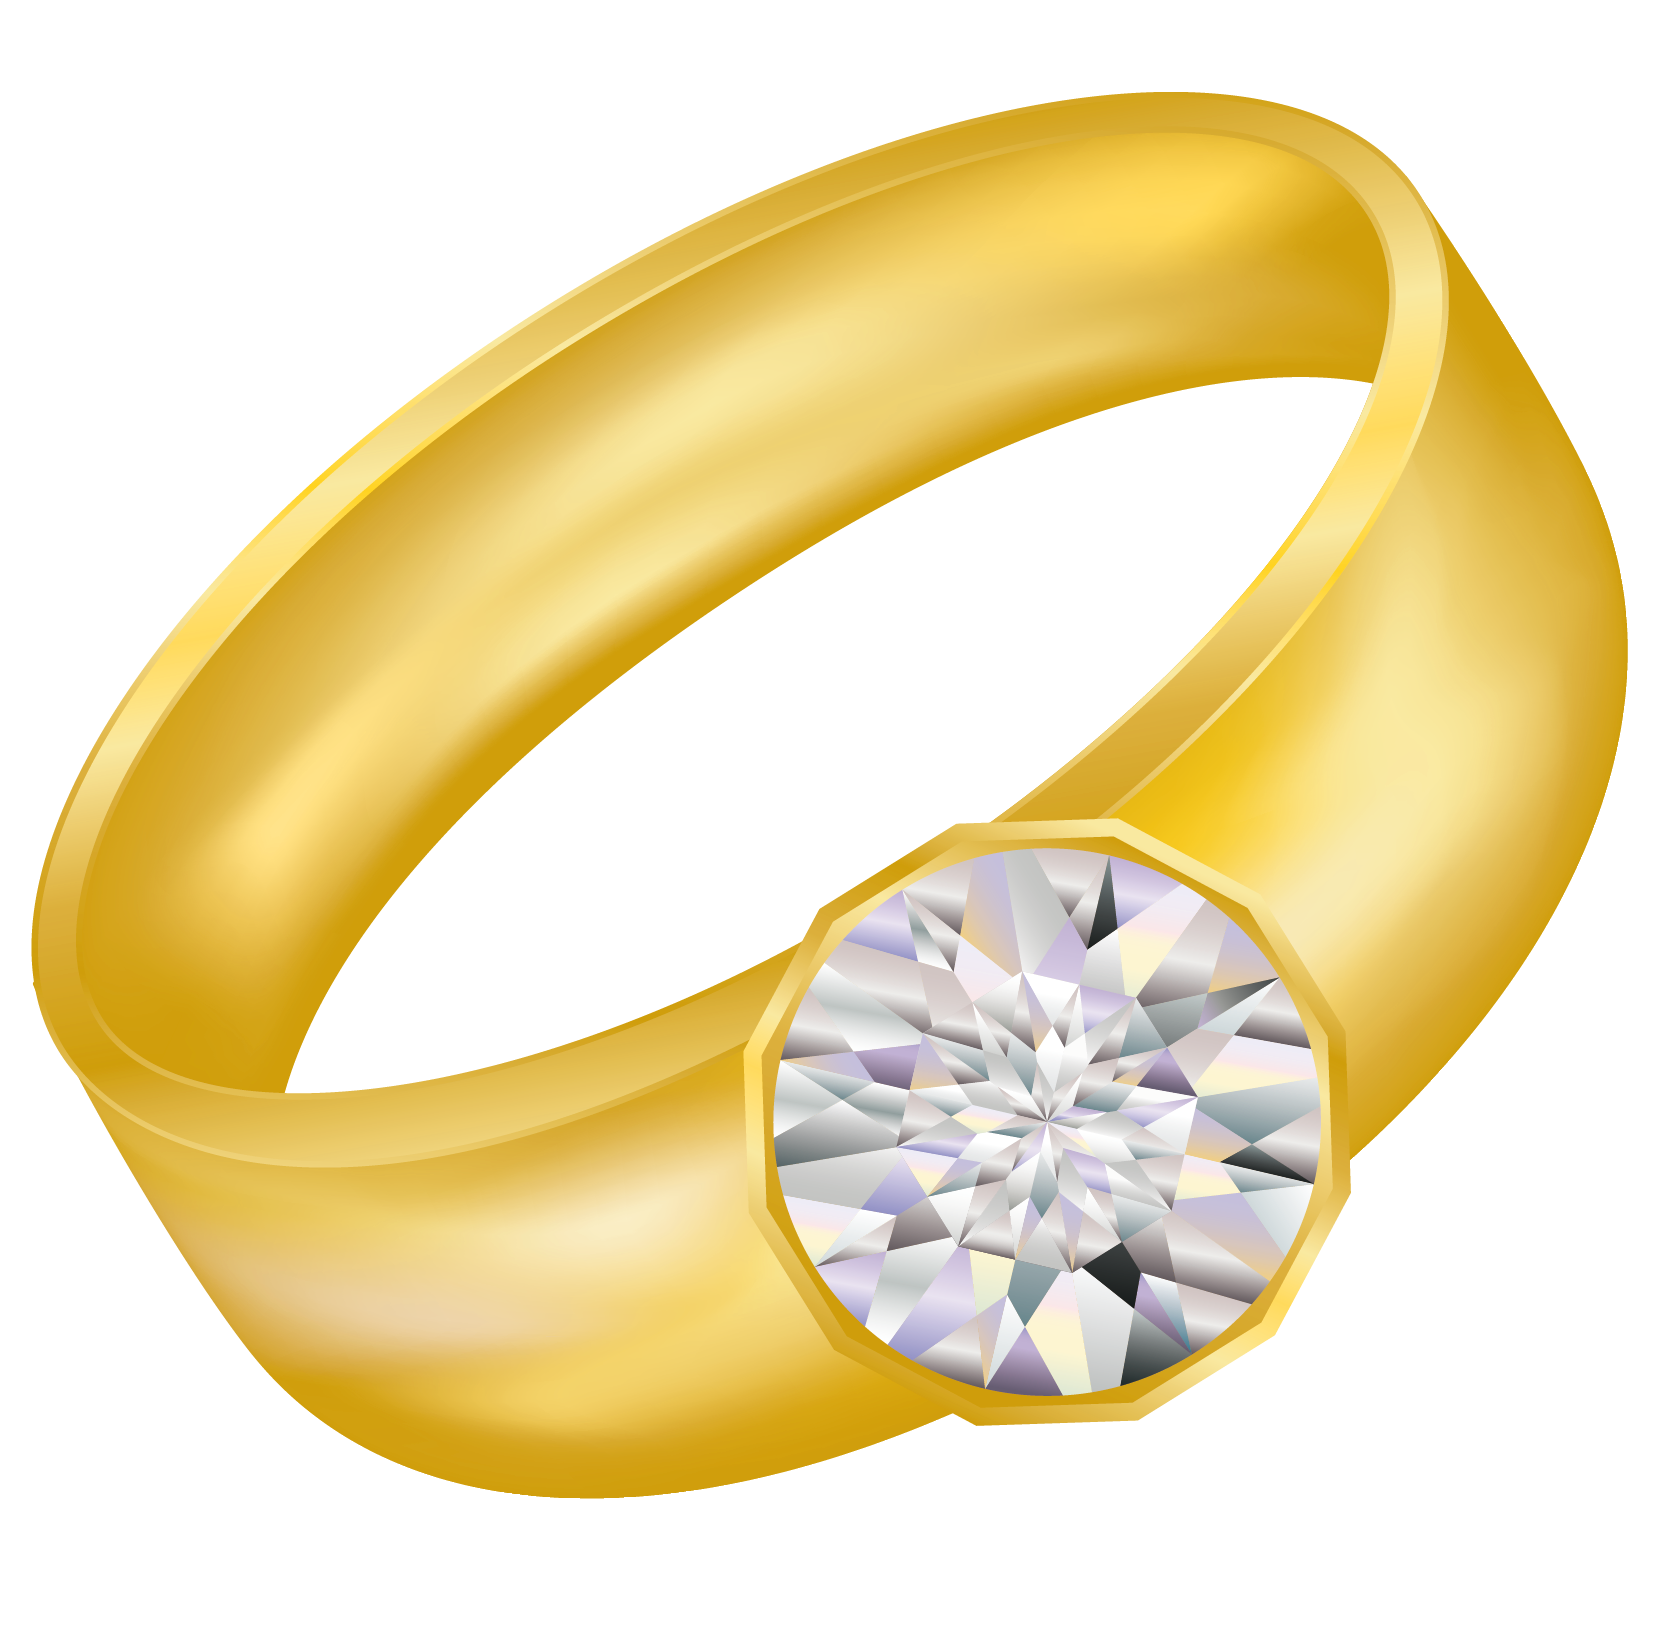 Gold ring clipart.